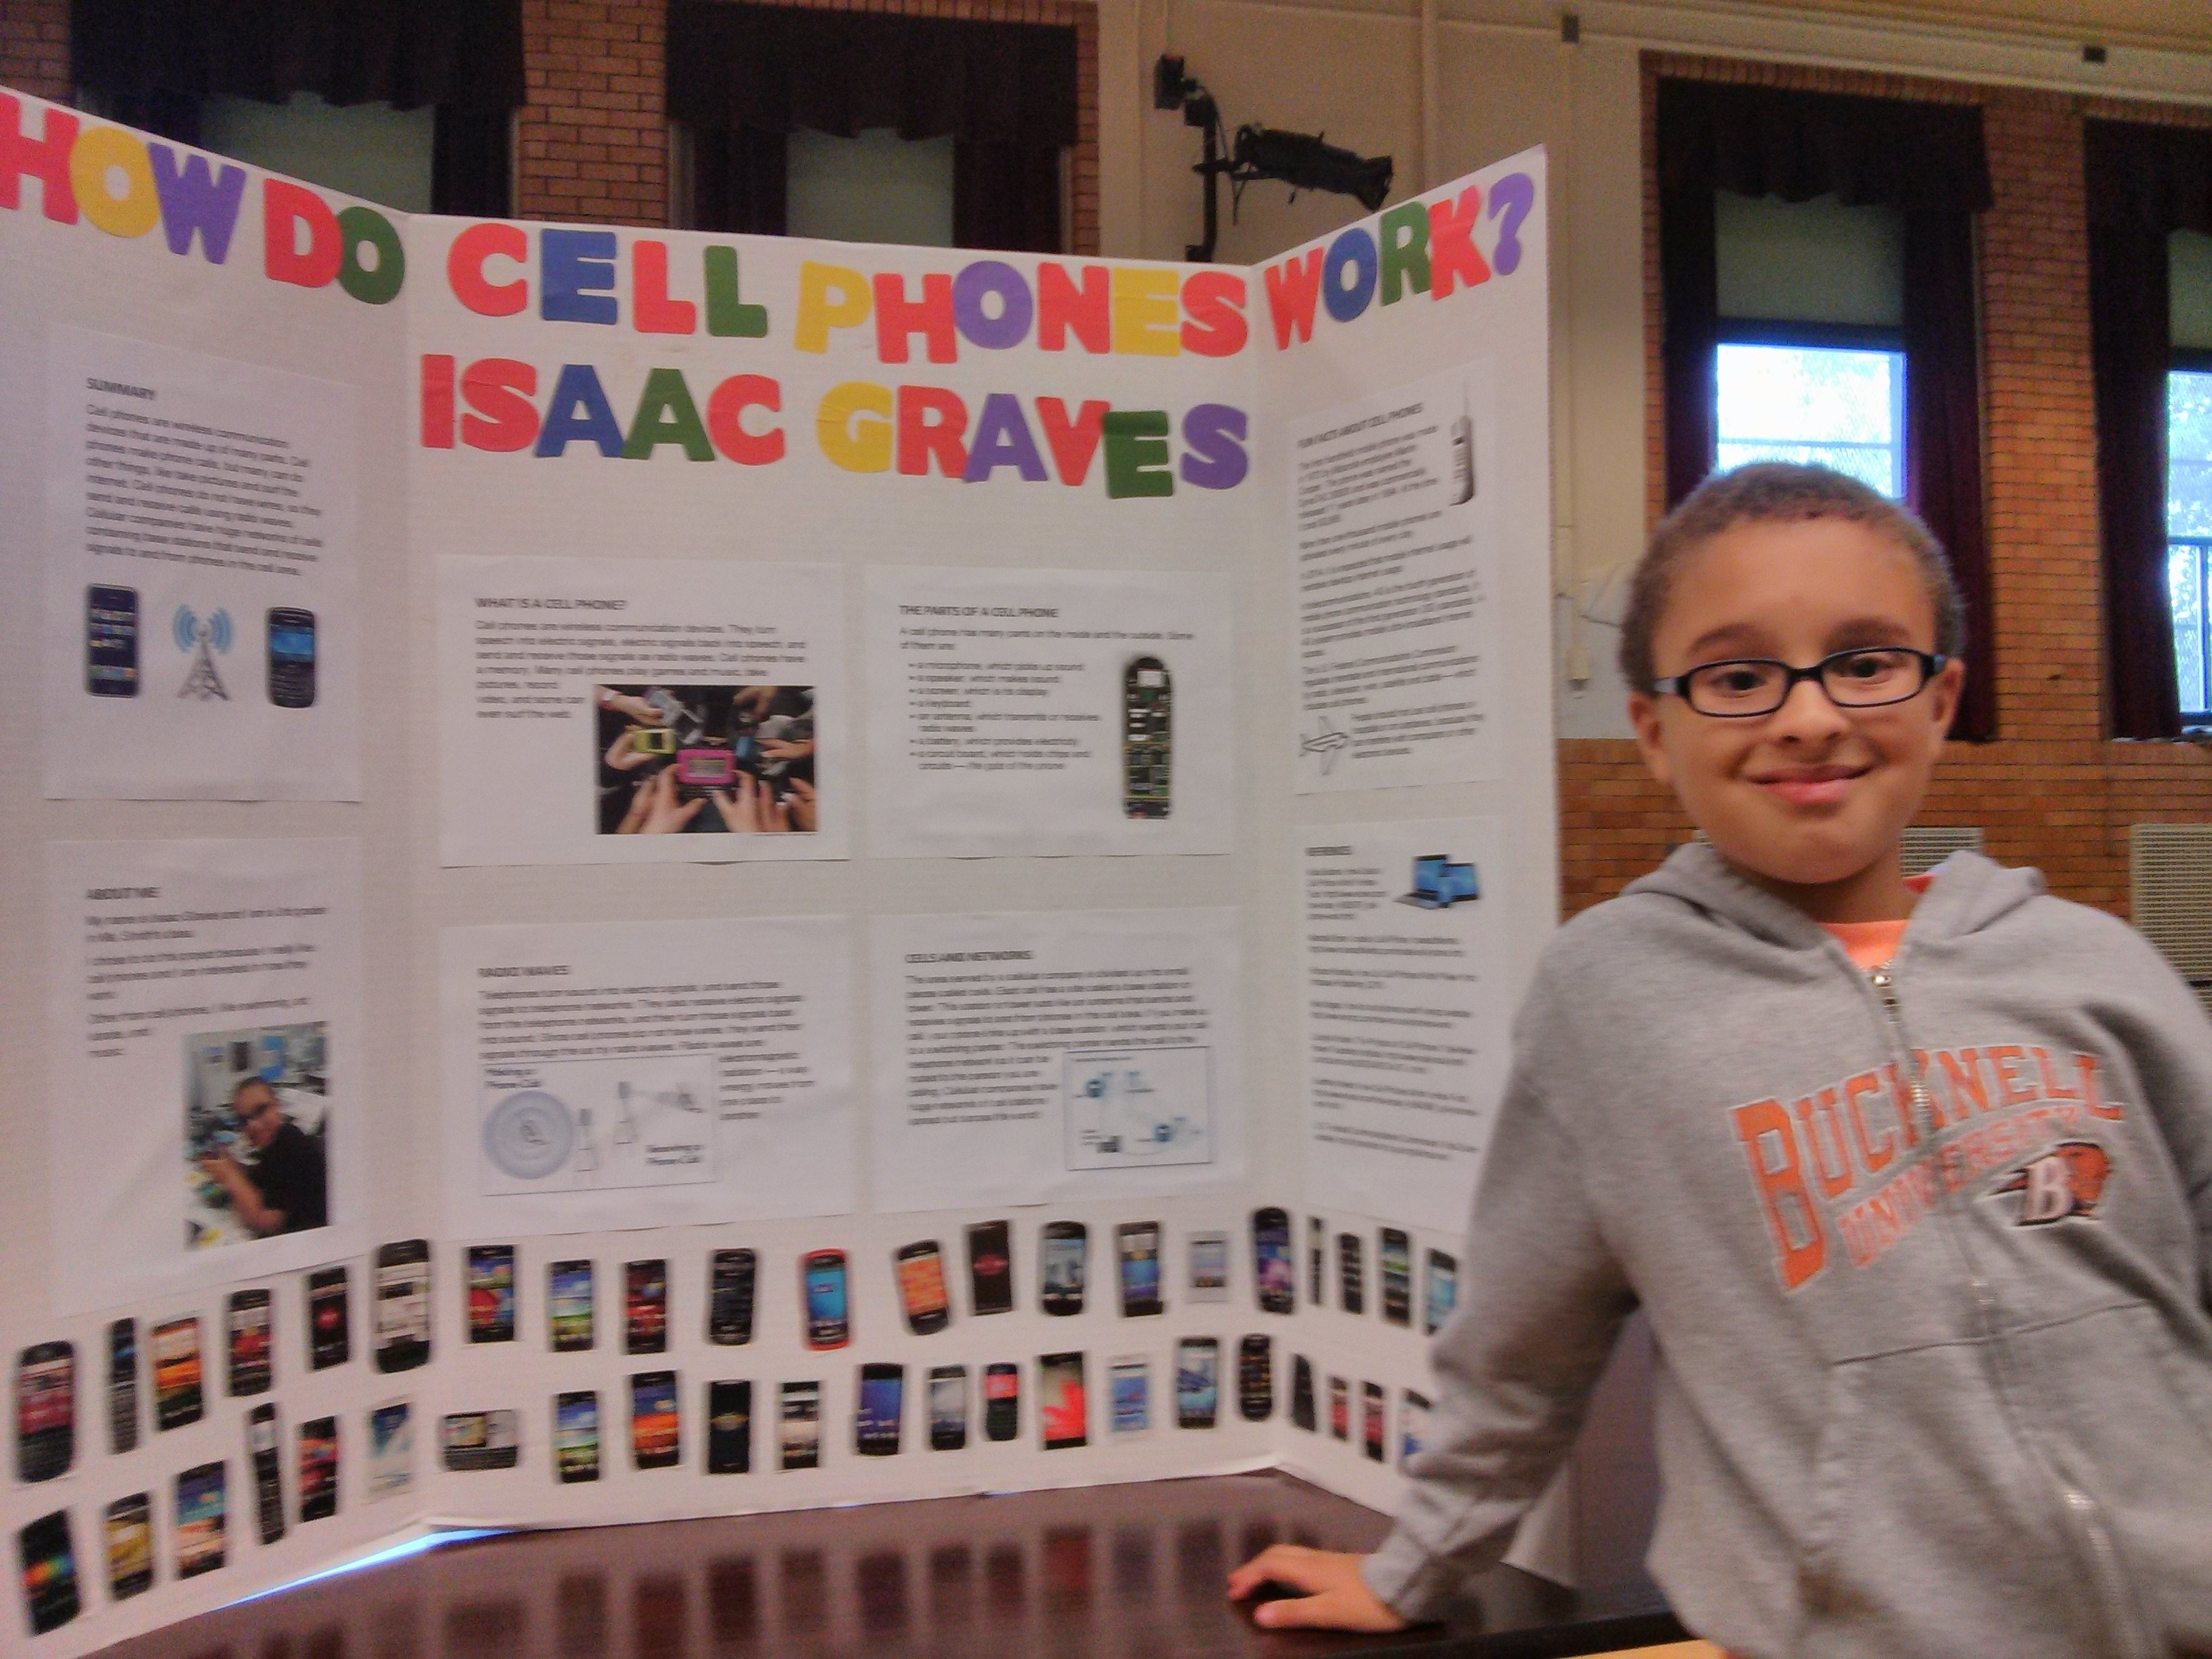 10 Awesome Science Fair Ideas For 5Th Grade third grade science projects research paper academic service